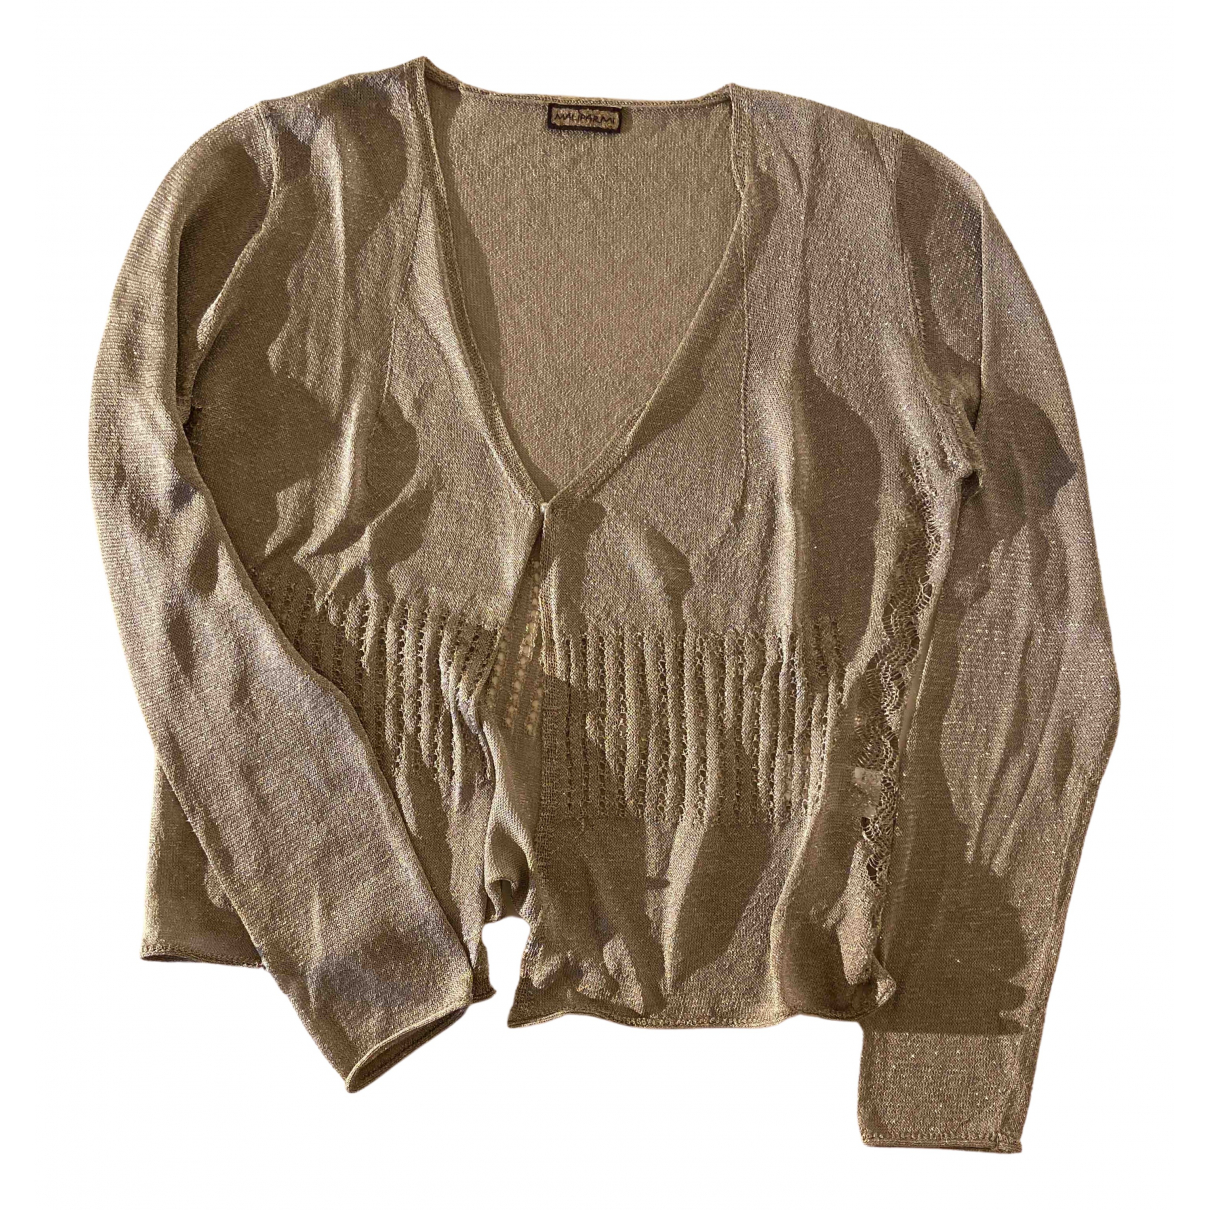 Maliparmi \N Beige Knitwear for Women S International